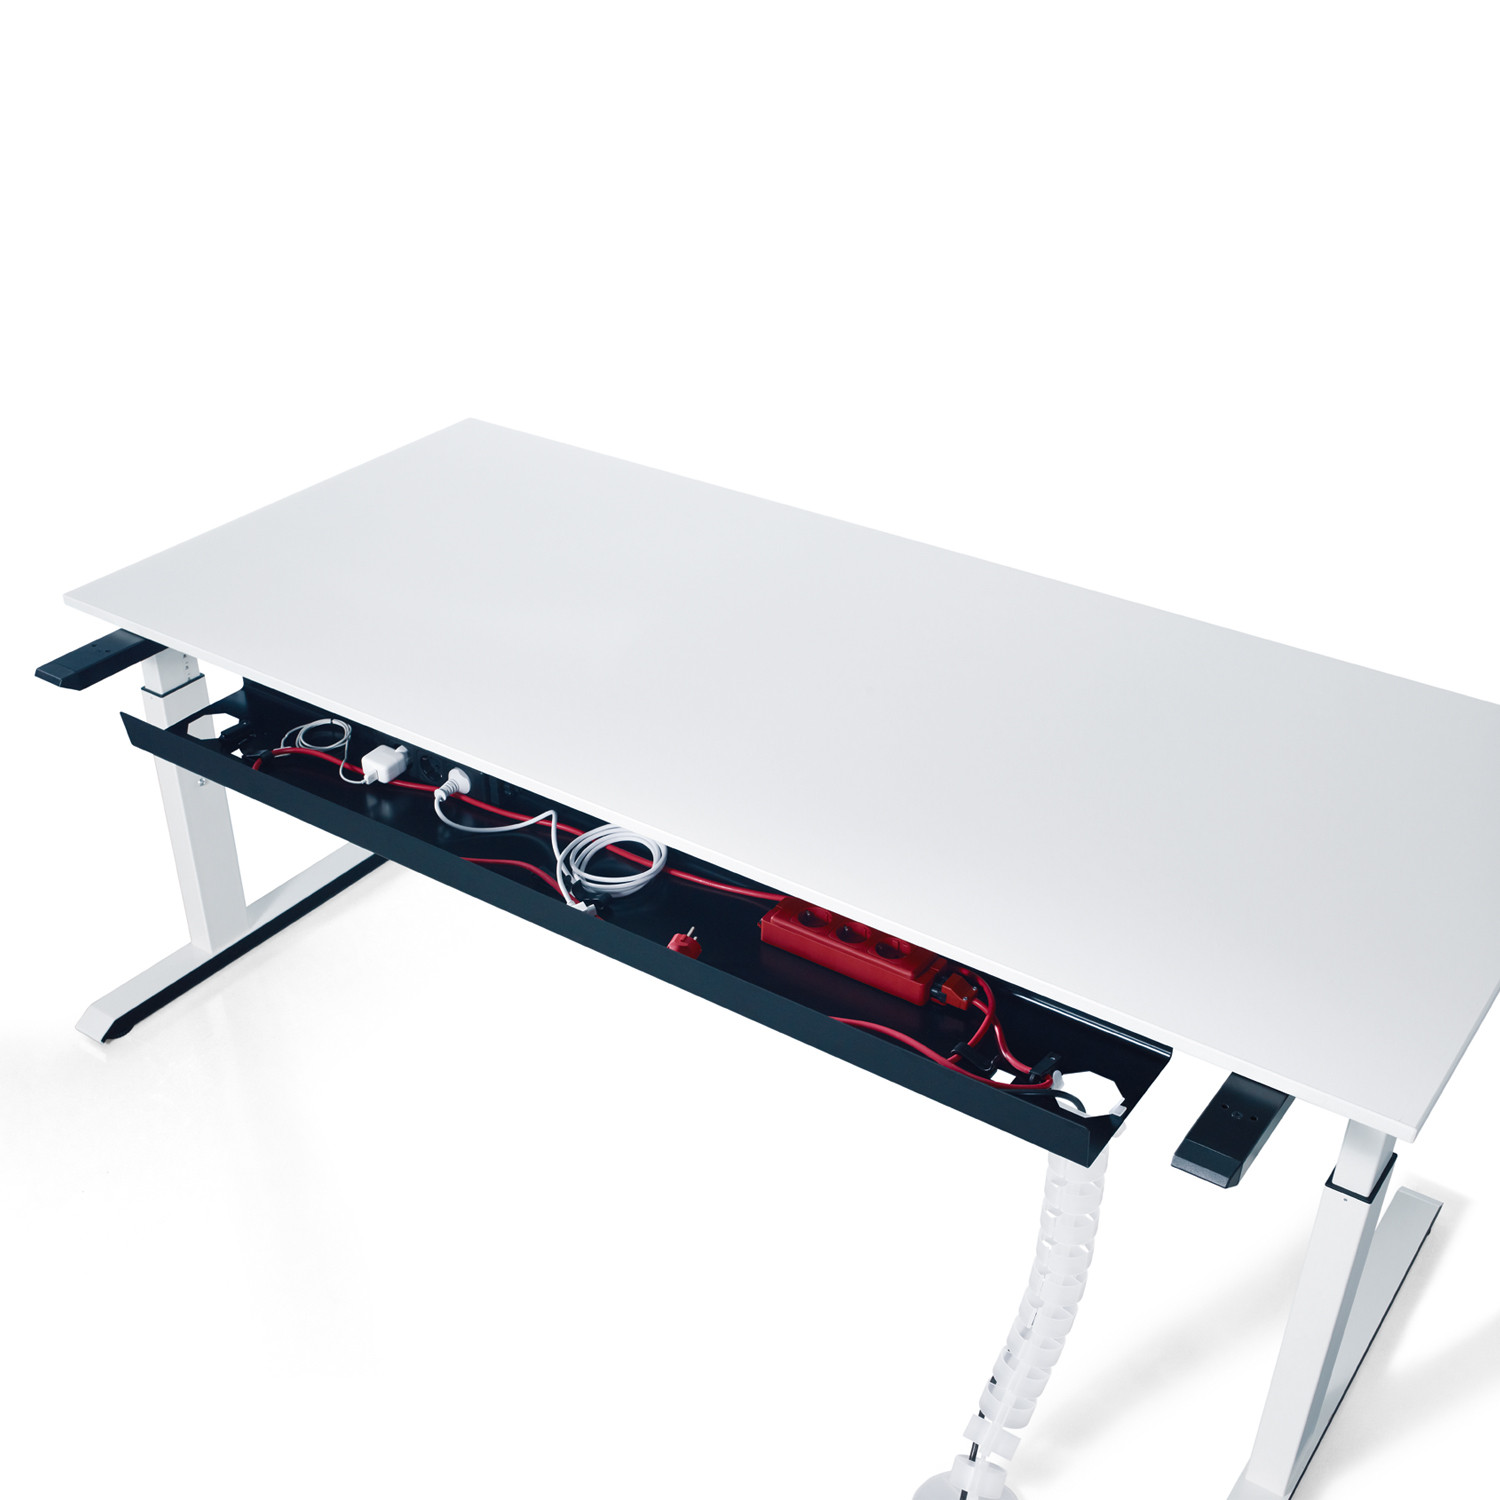 Temptation C Desk featuring cable tray management